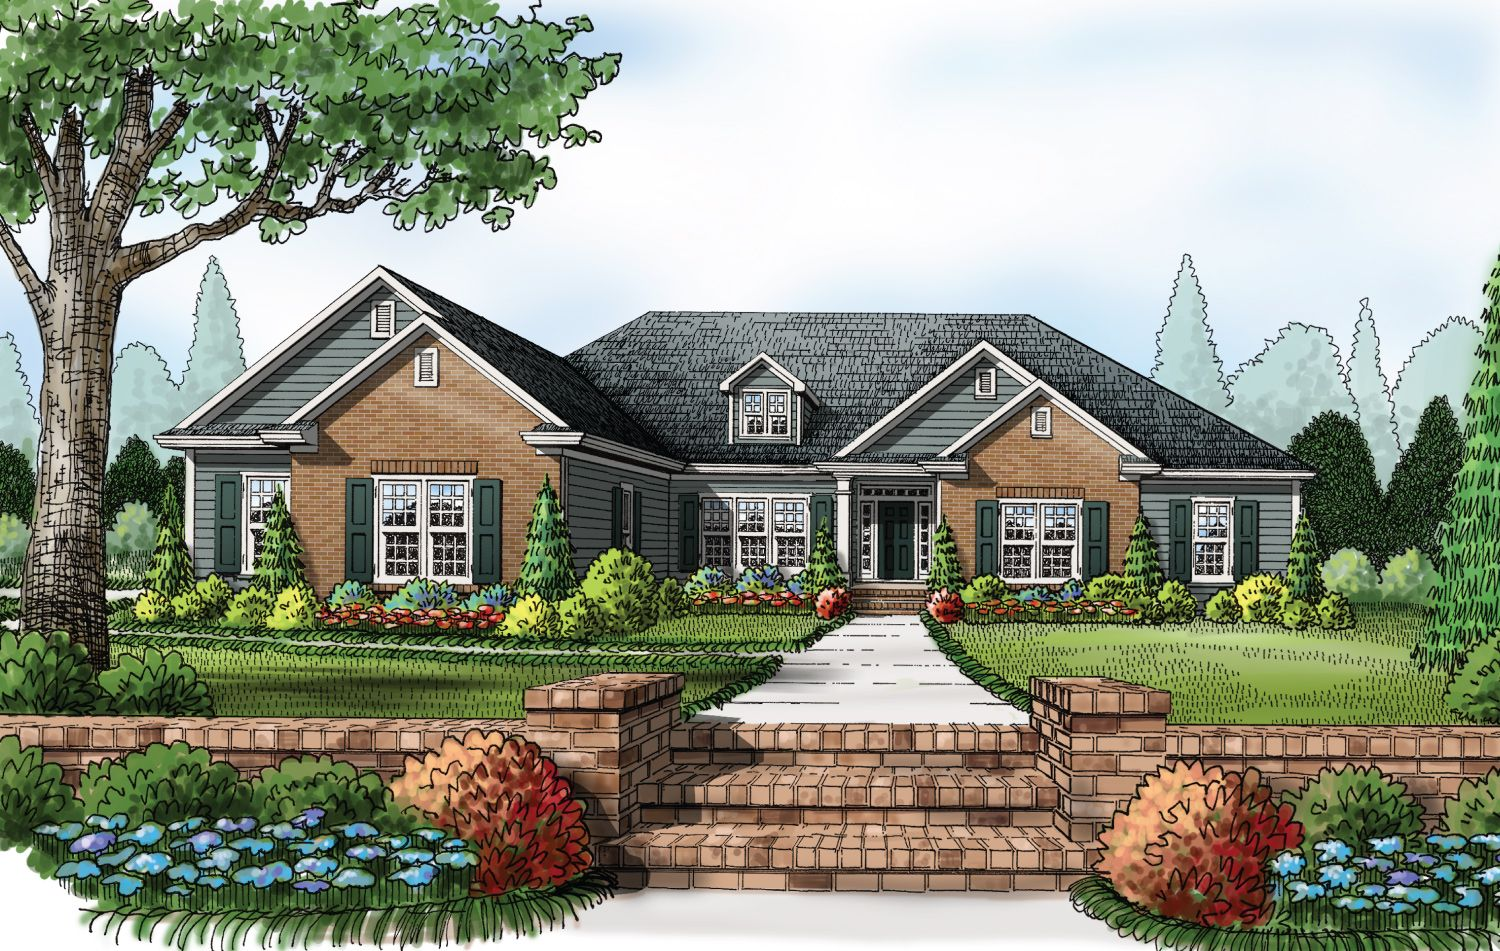 http://partners-dynamic.bdxcdn.com/Images/Homes/AmericasHomePlace/max1500_27920384-180606.jpg